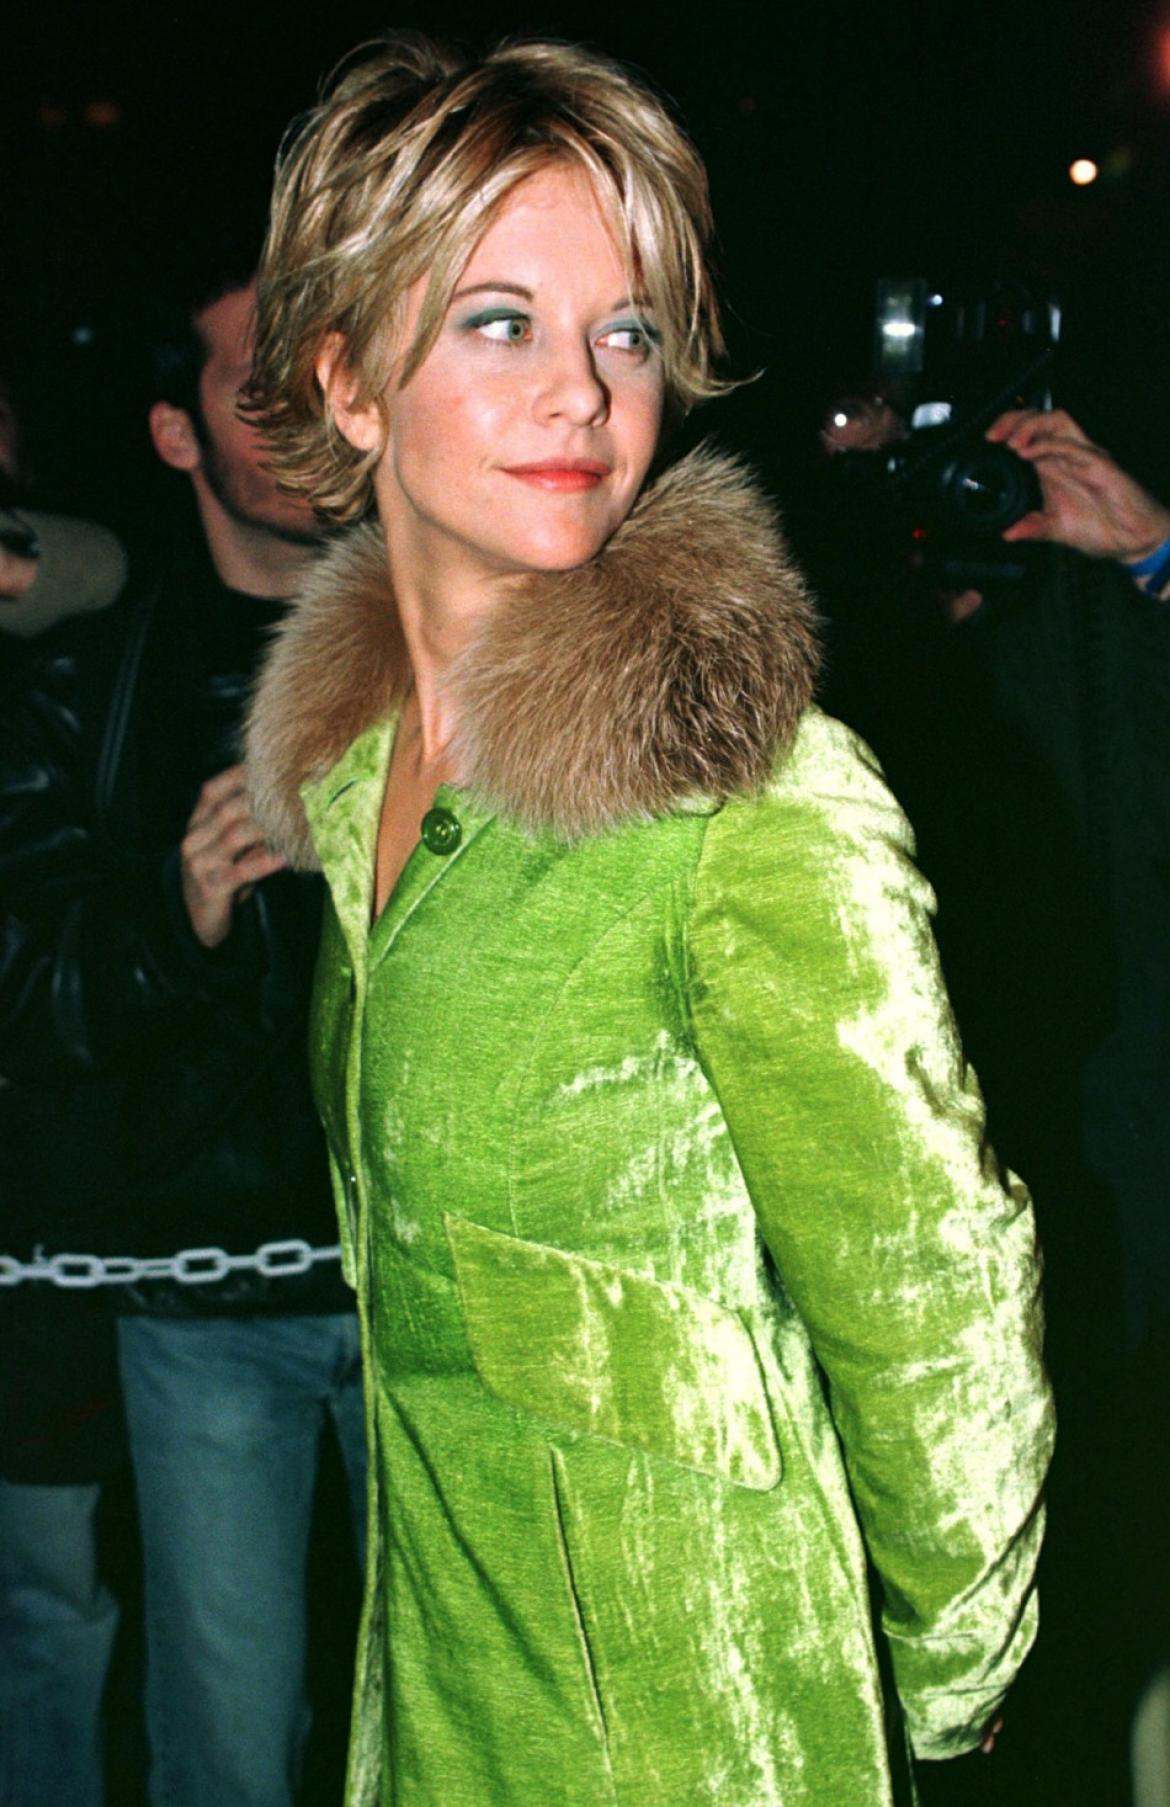 floral spring meg ryan in green